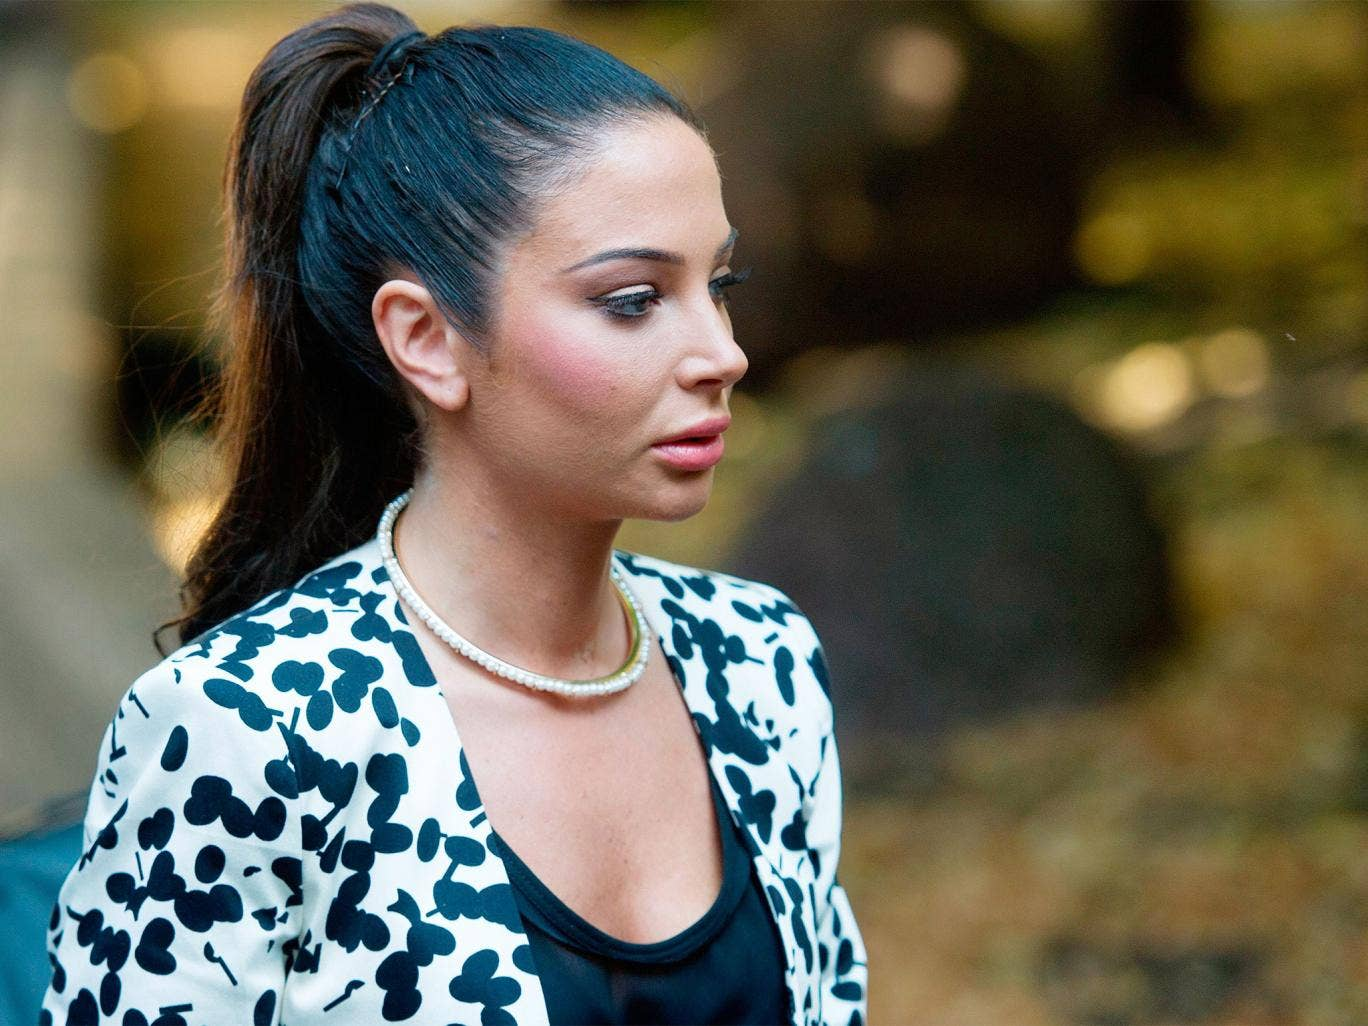 Former 'X Factor' judge Tulisa Contostavlos outside Southwark Crown Court in London